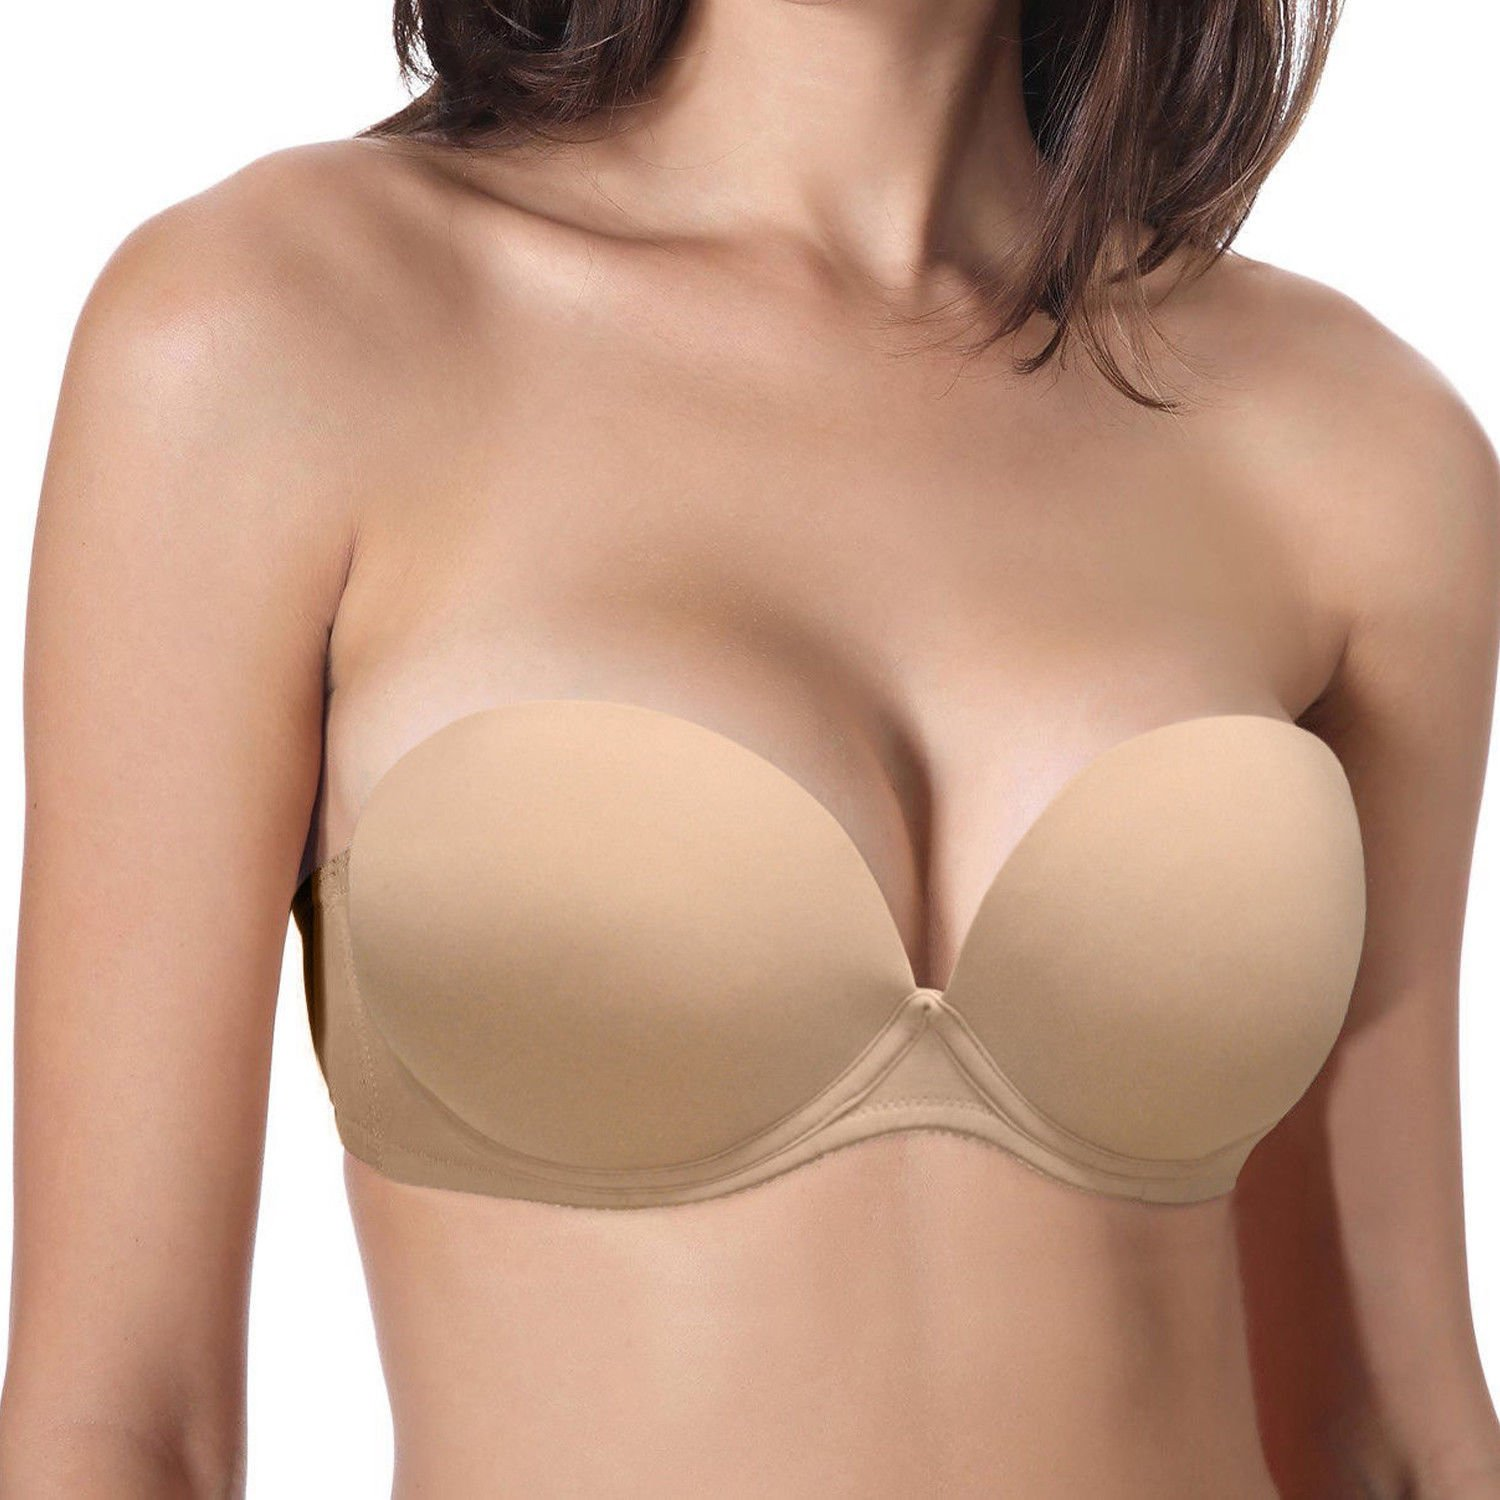 d86117355 Low cut convertible multiway strapless bra with contour underwire thick  padded cups. Detachable straps converts several ways  regular